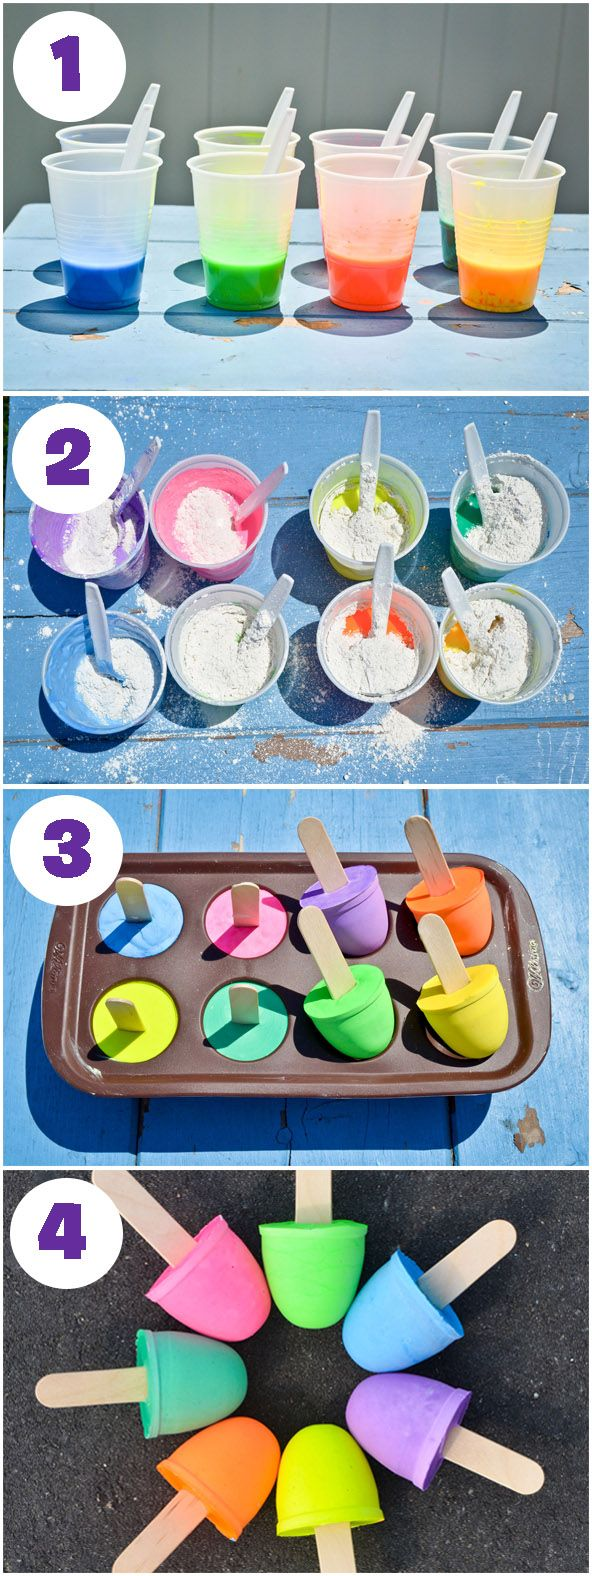 Kids Craft Ideas Pinterest Part - 18: Crafts Toddlers